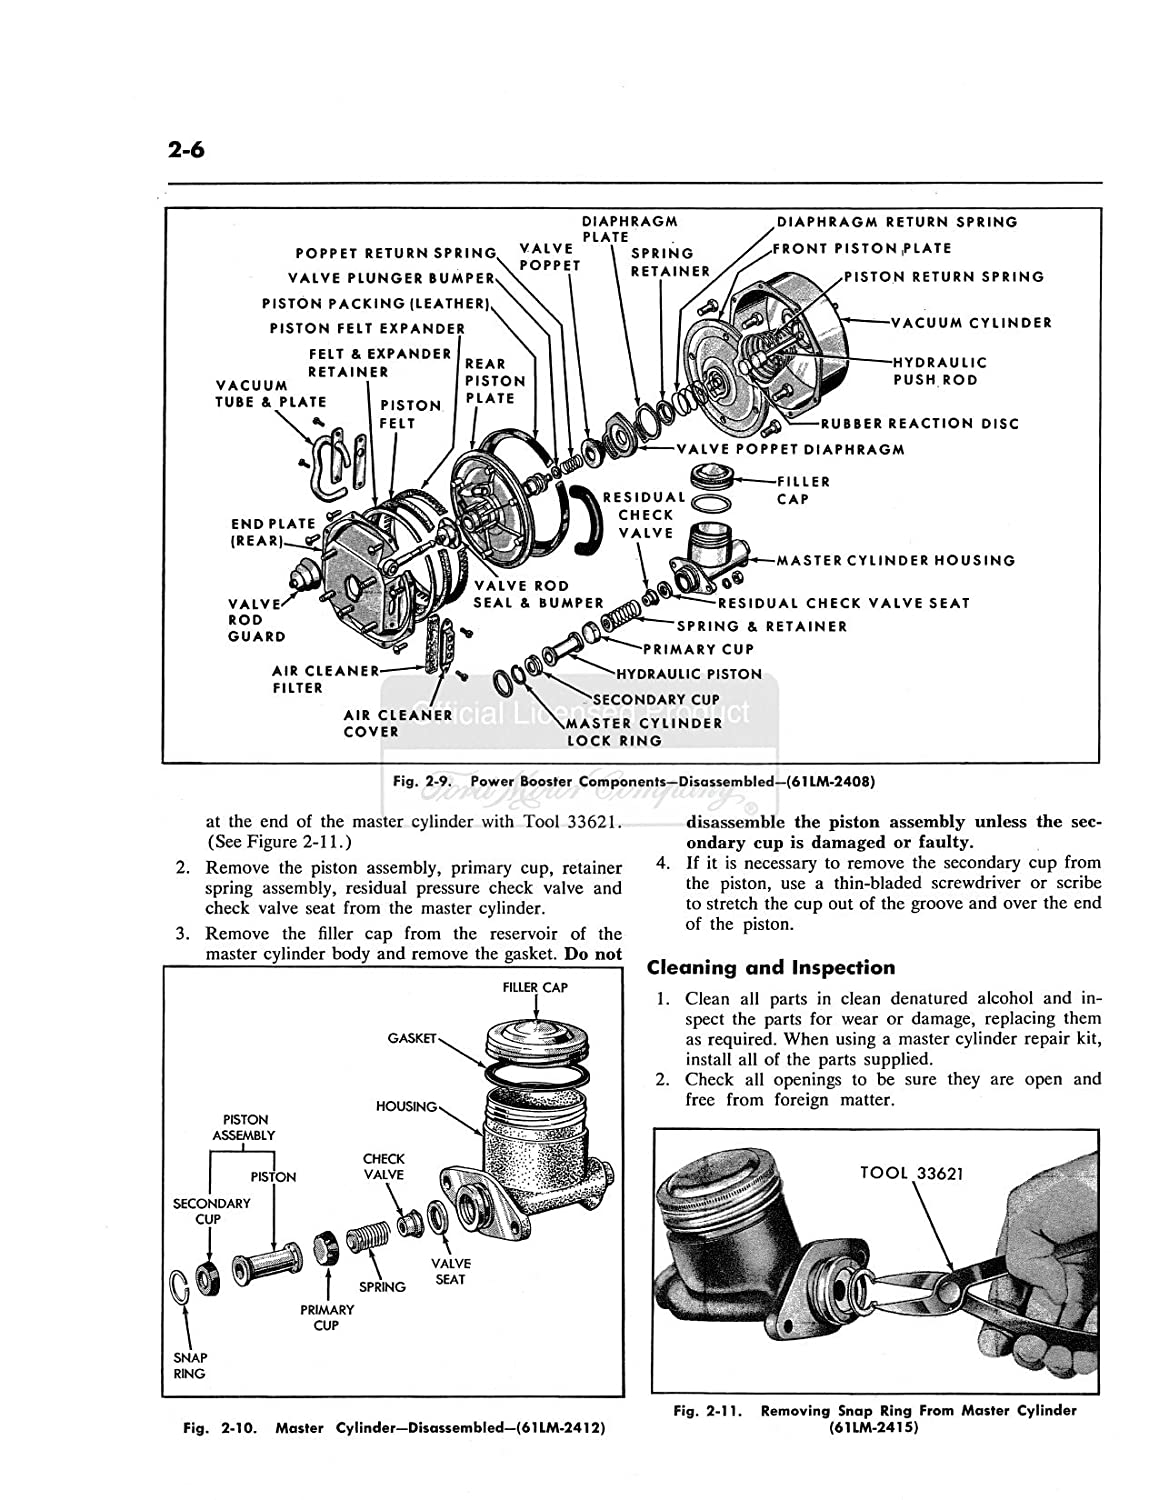 62 Lincoln Engine Diagram Schematic 4 6 For Parts 2019 Ebook Library 82 Chevy Vacuum Line